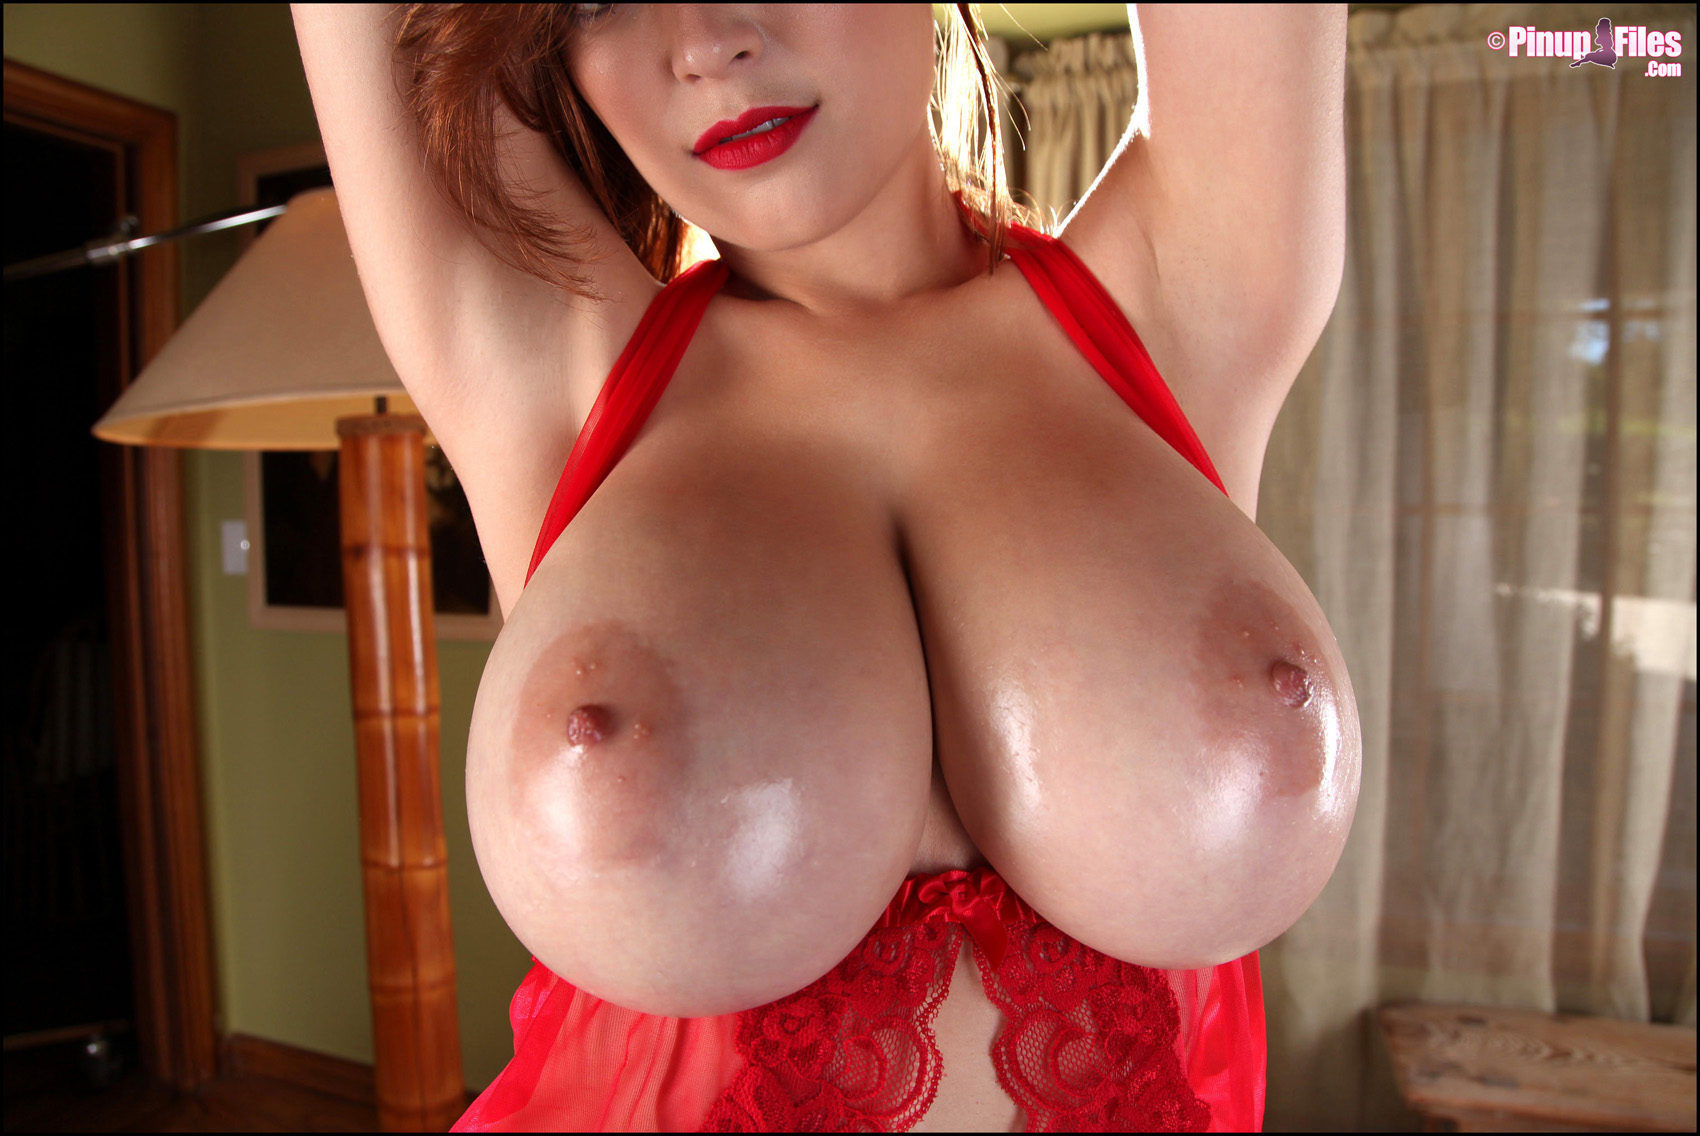 Best titties from stargus, ebony christmas